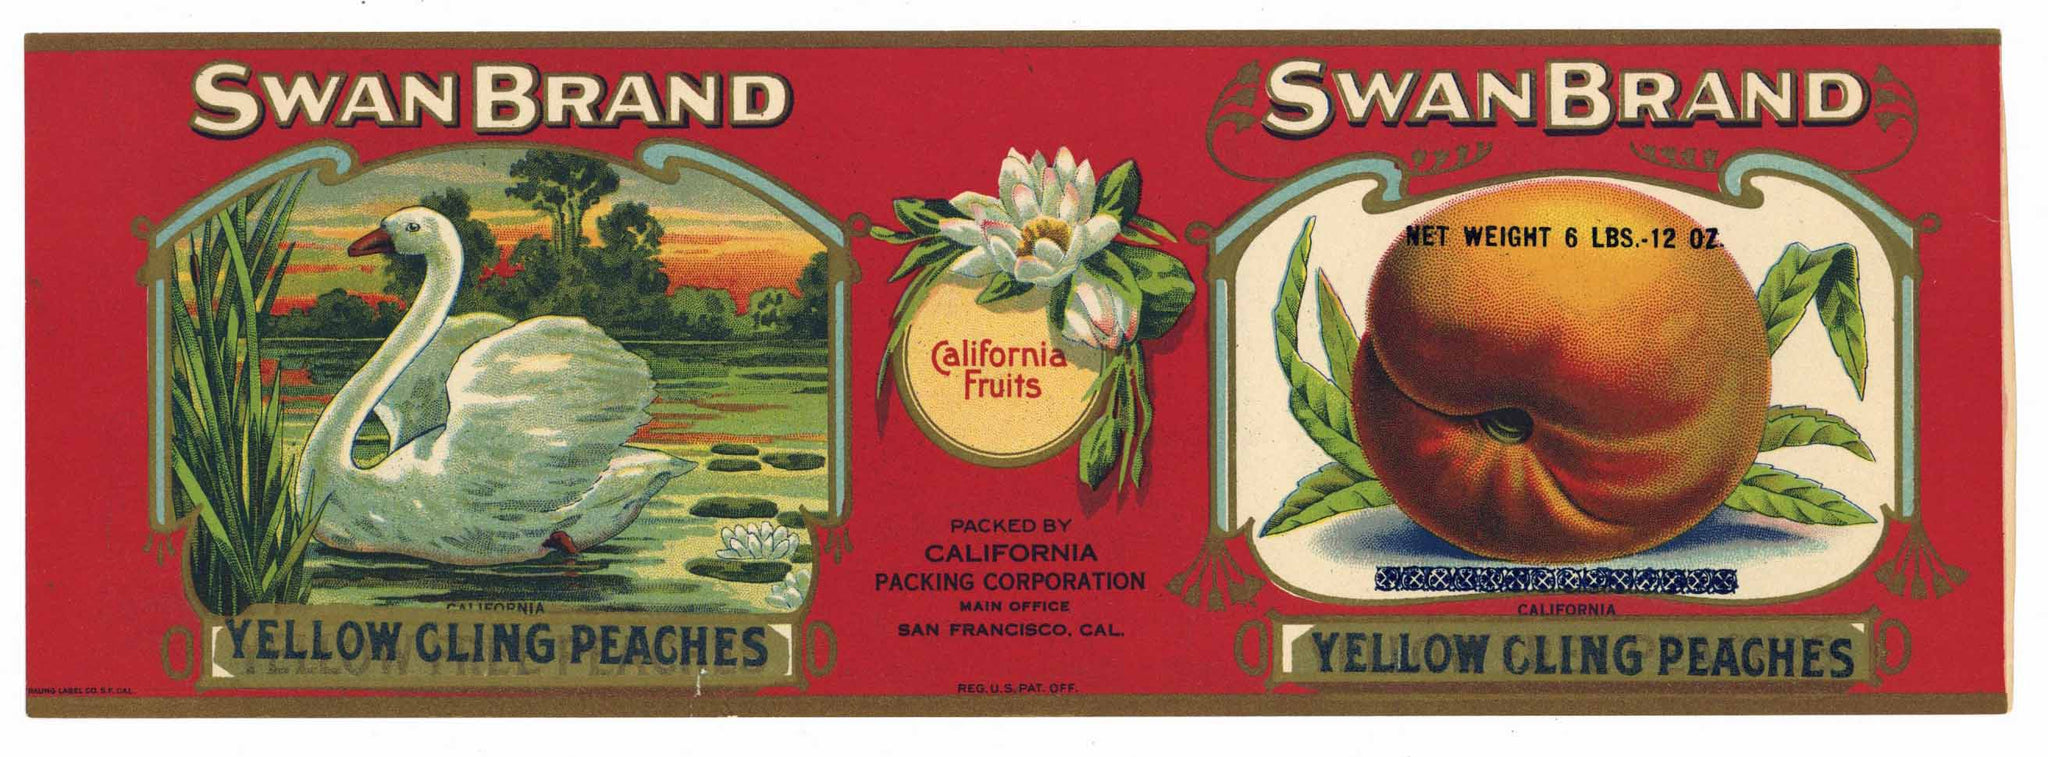 Swan Brand Vintage Peach Can Label